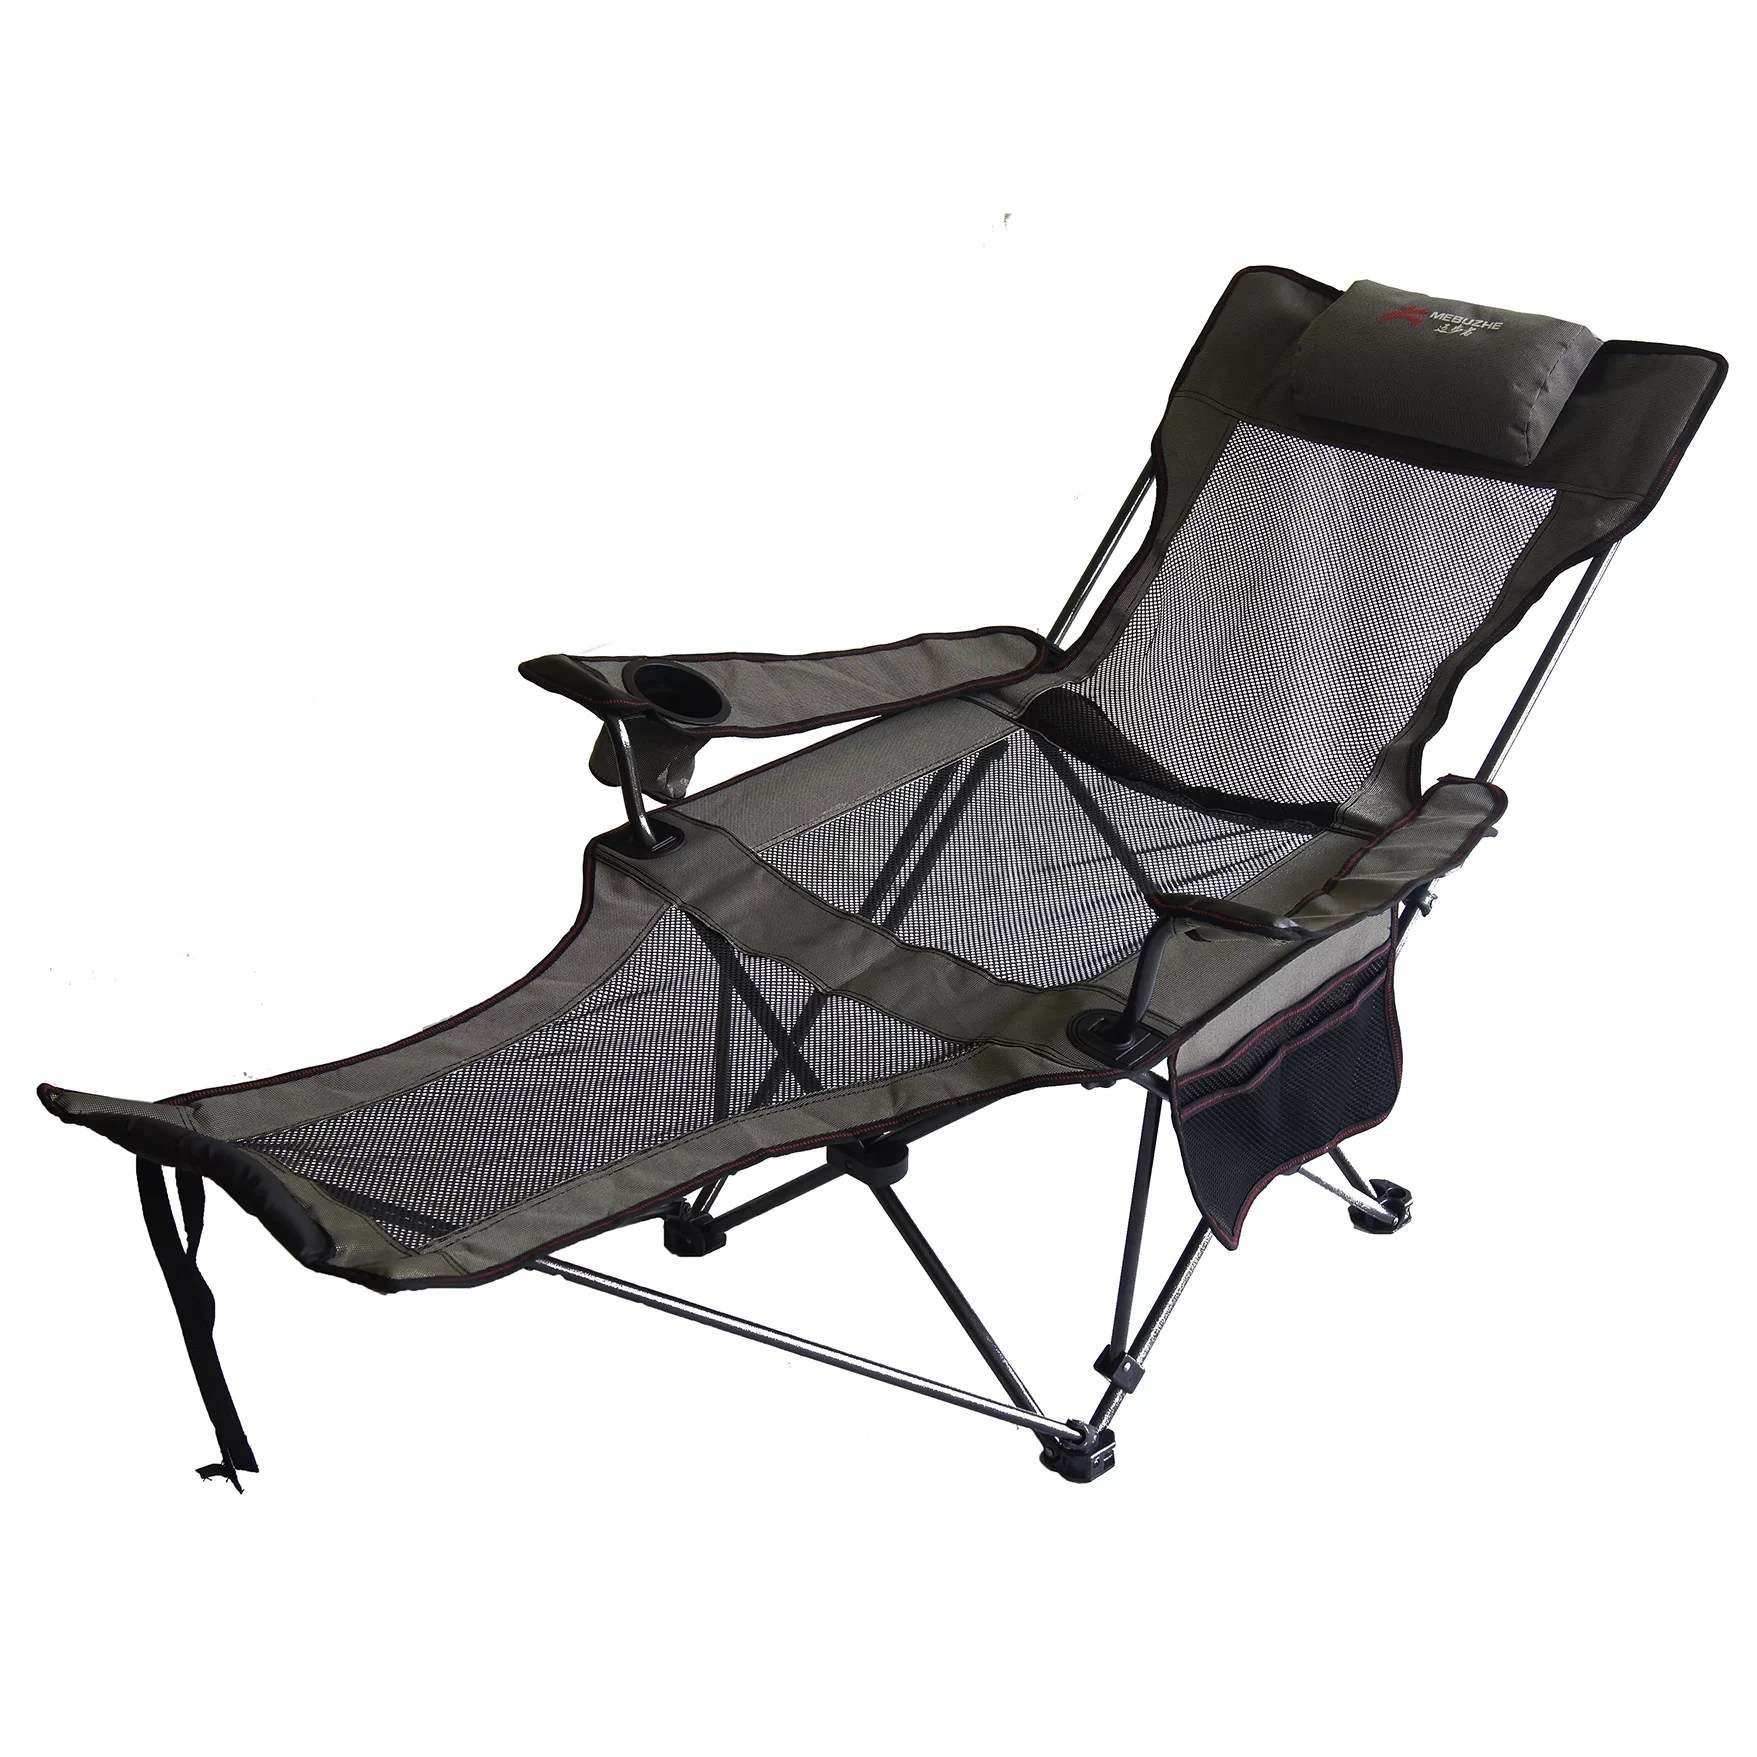 Mesh Lounge Chair Ore Furniture Portable Mesh Lounger Reclining Chair